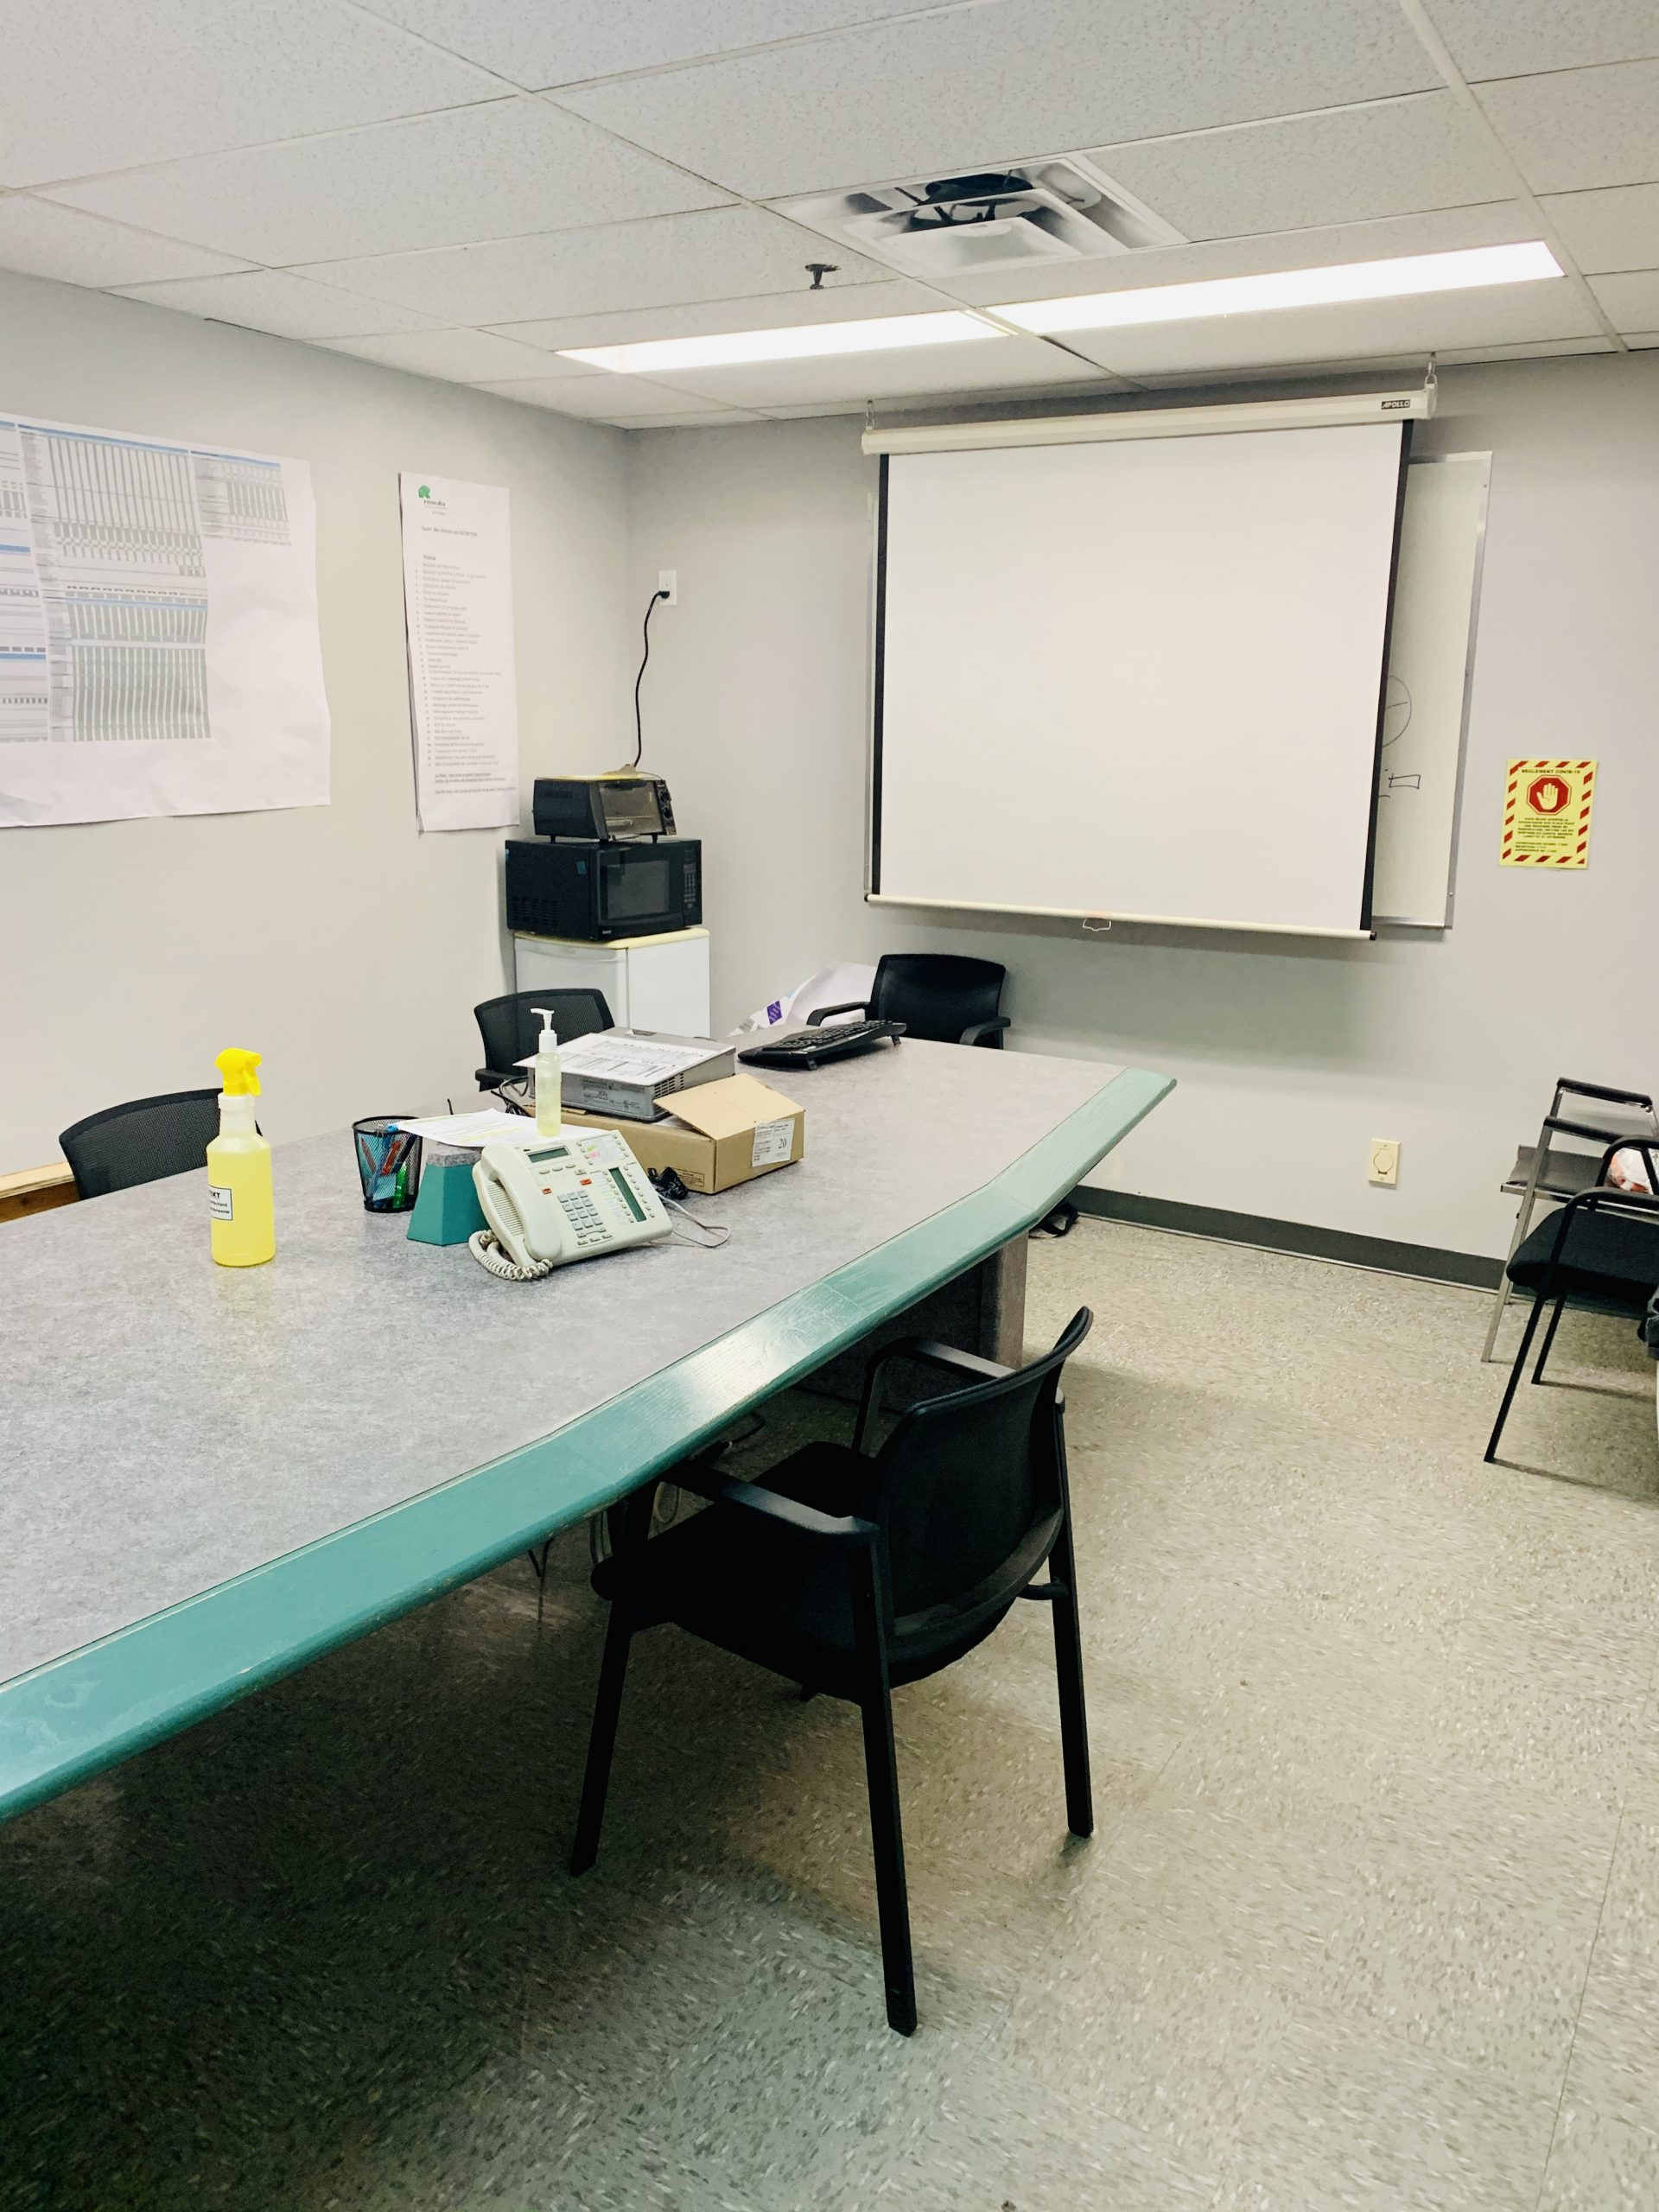 The conference room, where internal meetings will take place.